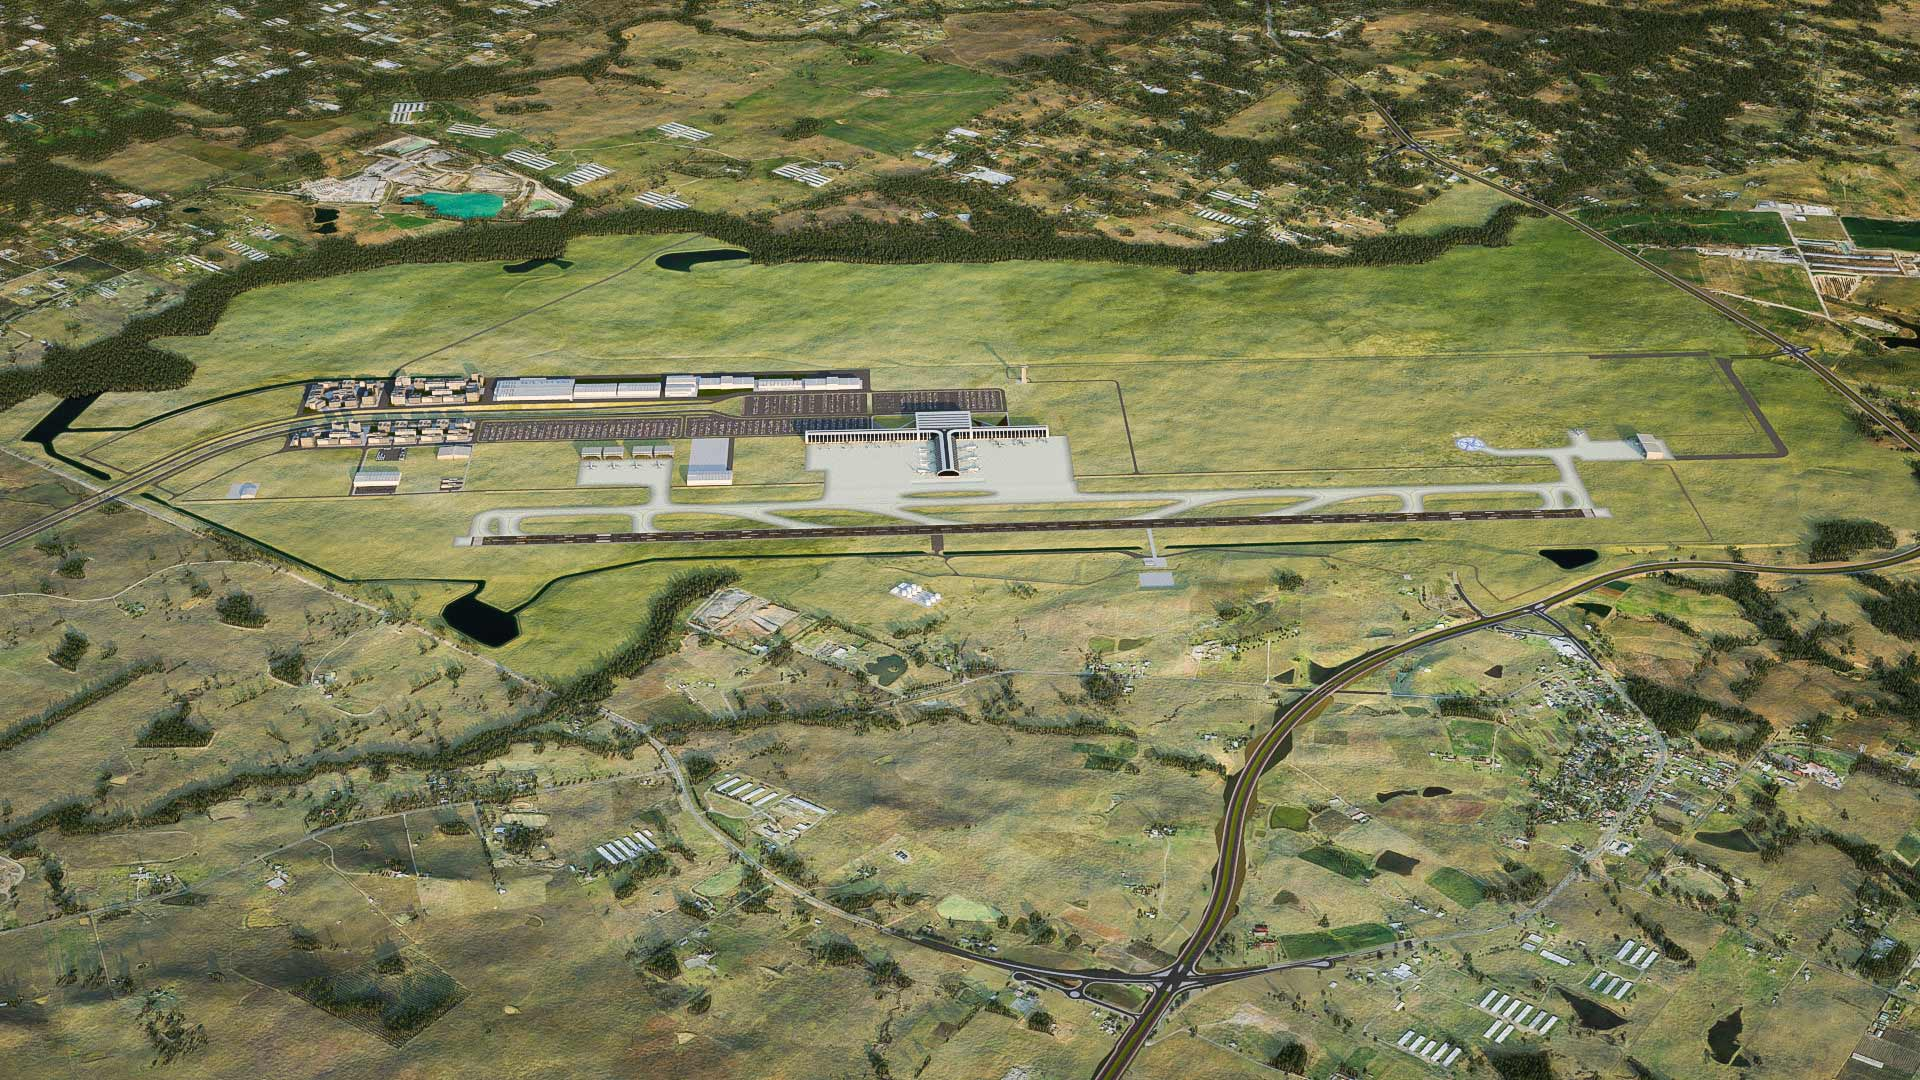 3D artist's impression rendering of Stage 1 of the Western Sydney airport